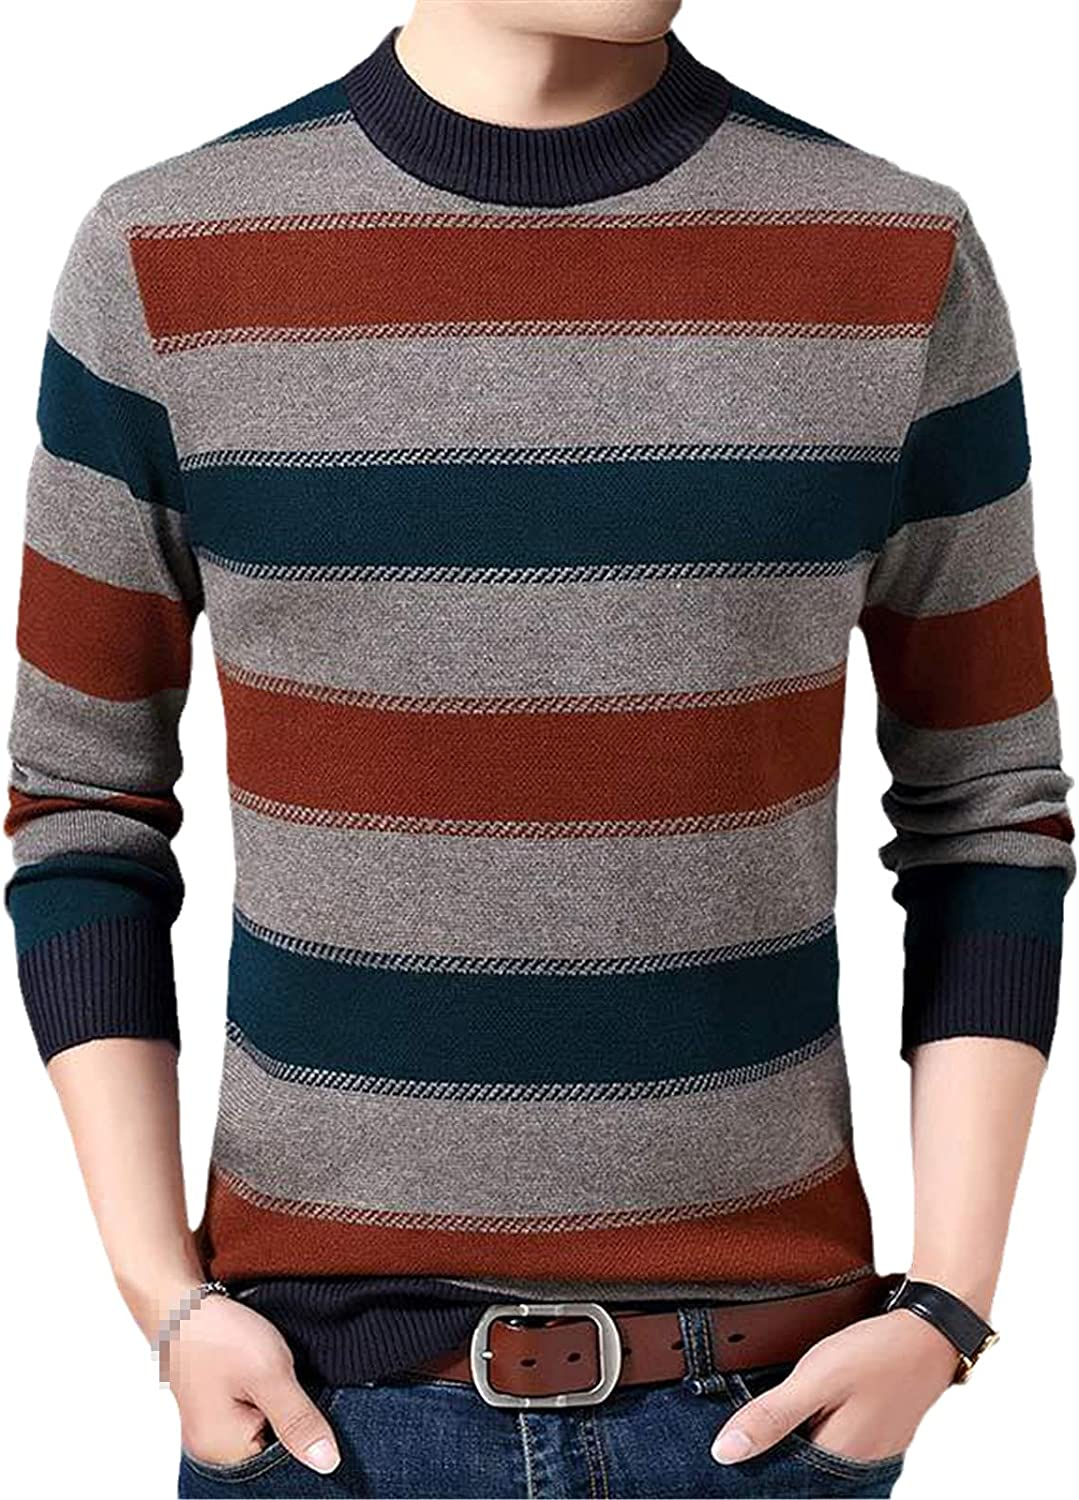 LKIUGVV Casual Thick Warm Winter Striped Knitted Pull Sweater Men Wear Jersey Dress Pullover Knit Mens Sweaters